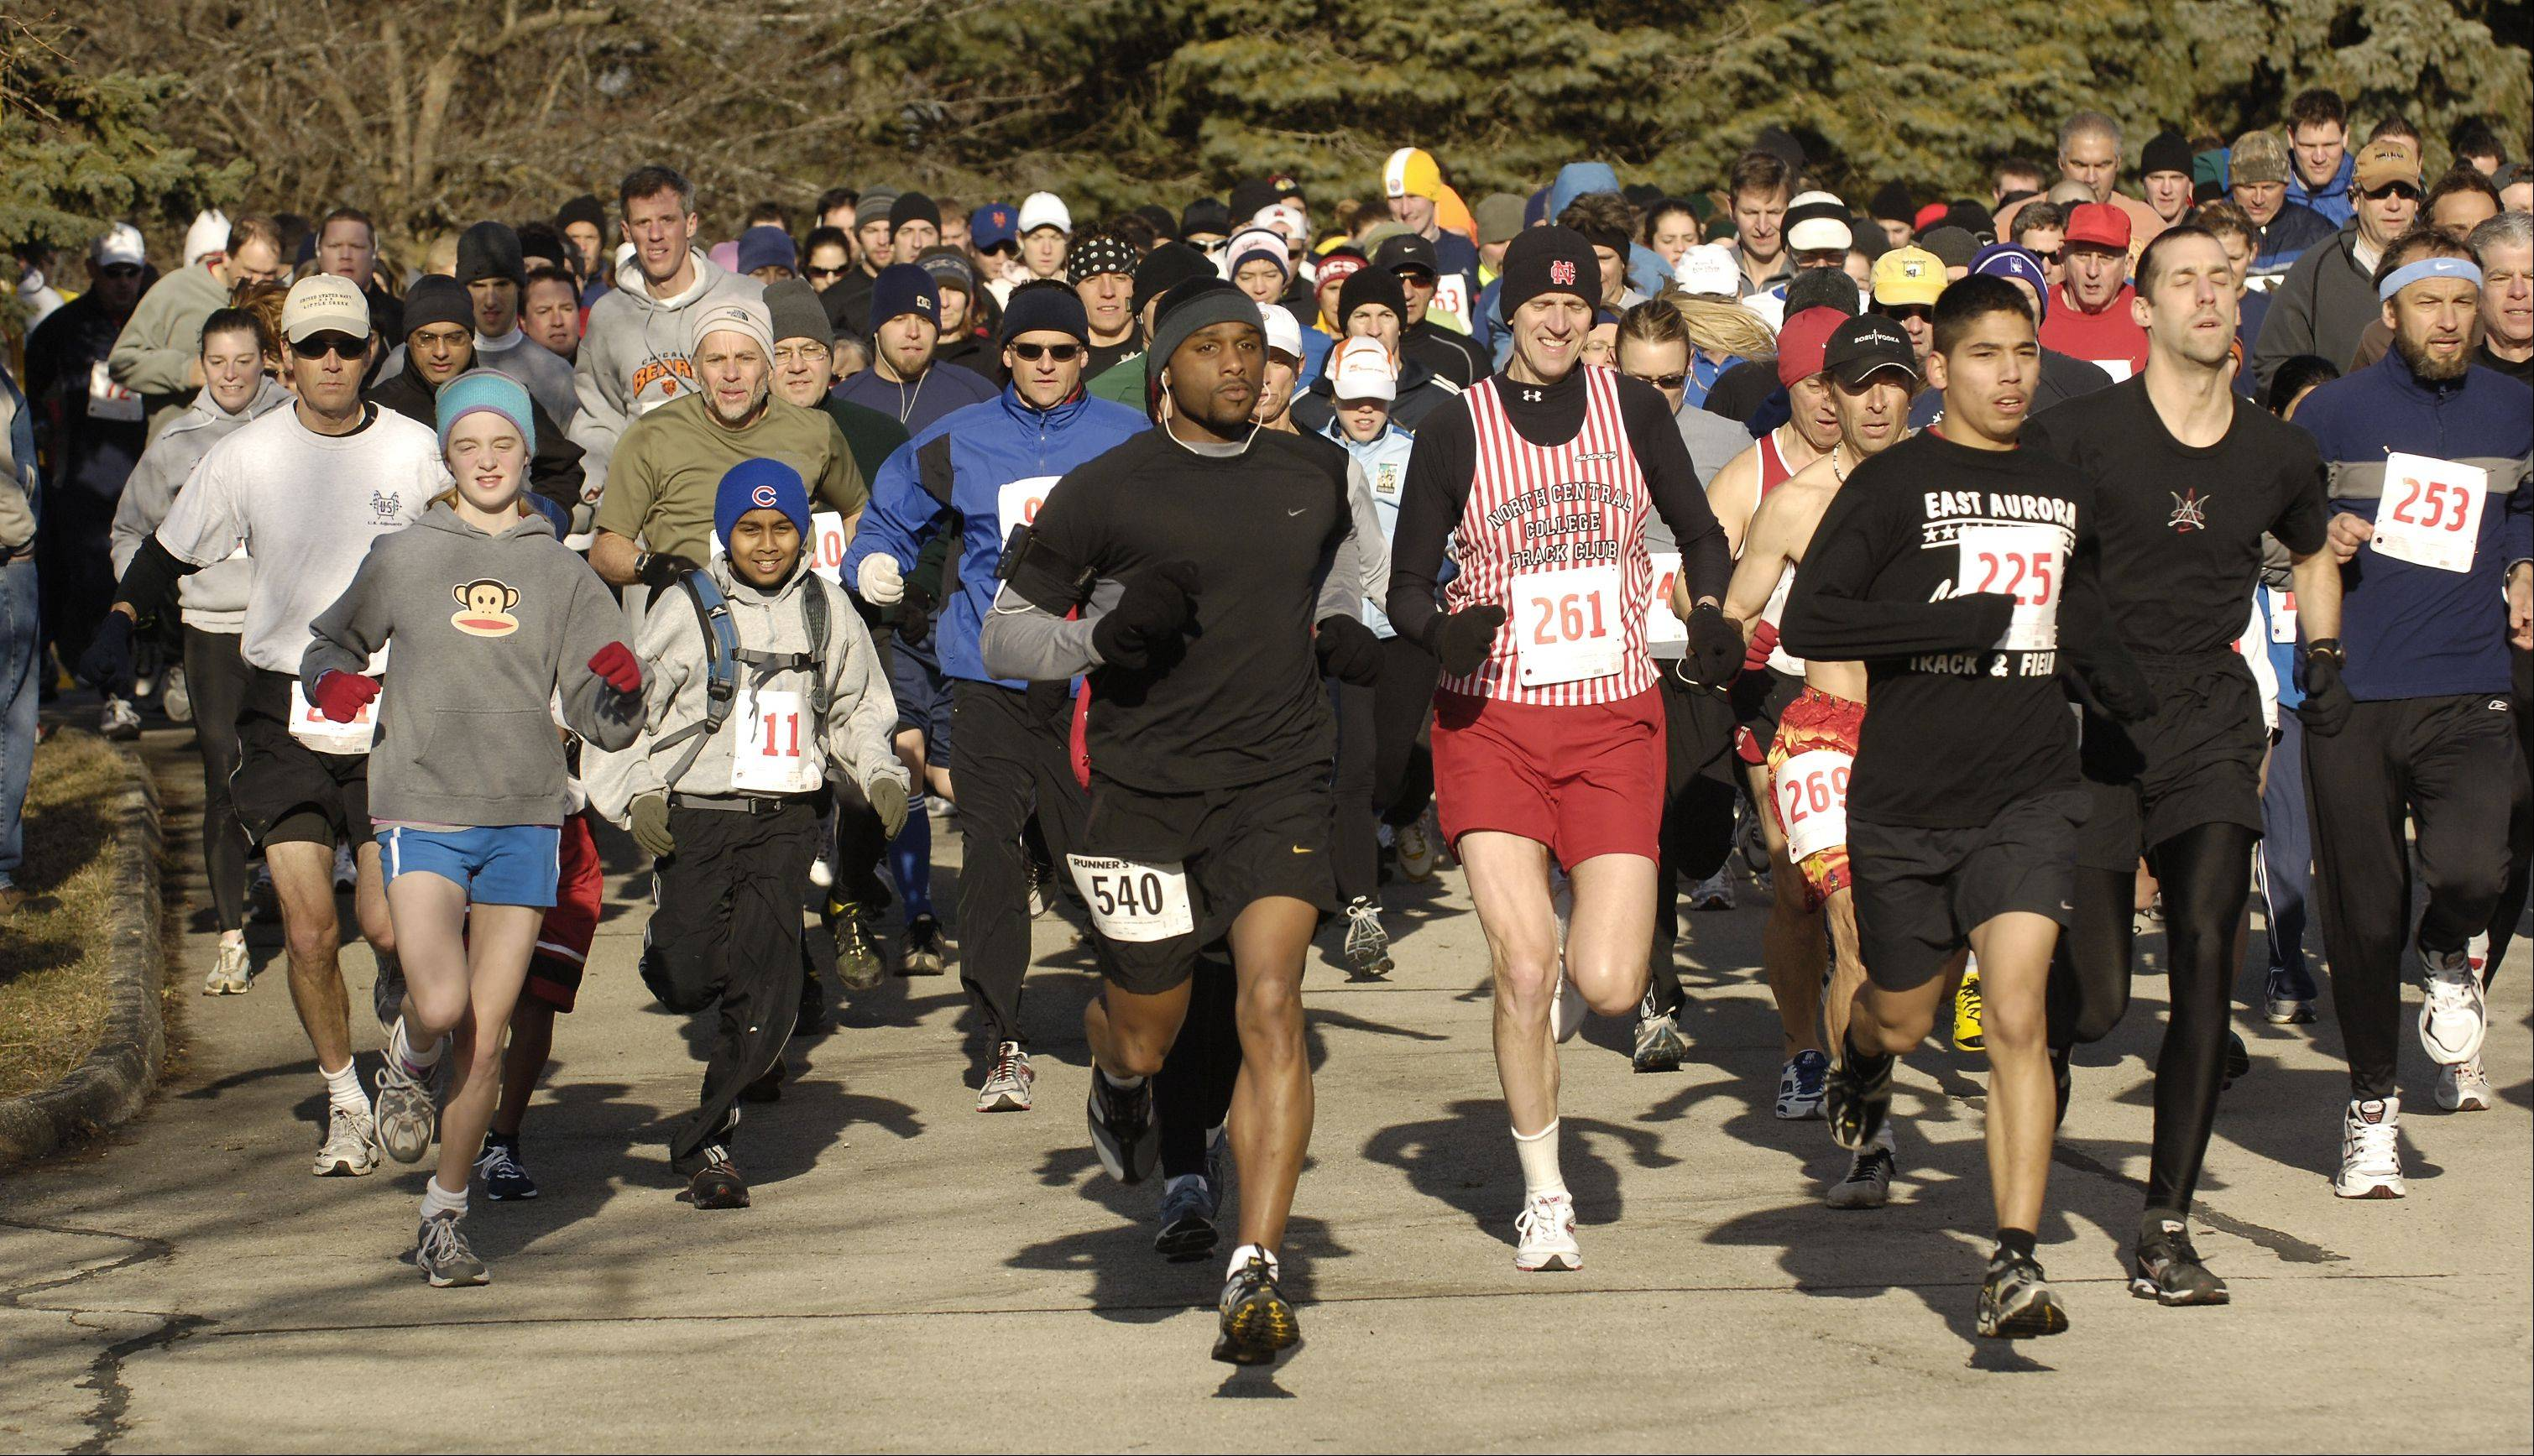 Blackberry Farm's fifth annual 5K Spring Gallop will take off at 8:30 a.m. Saturday, March 31.